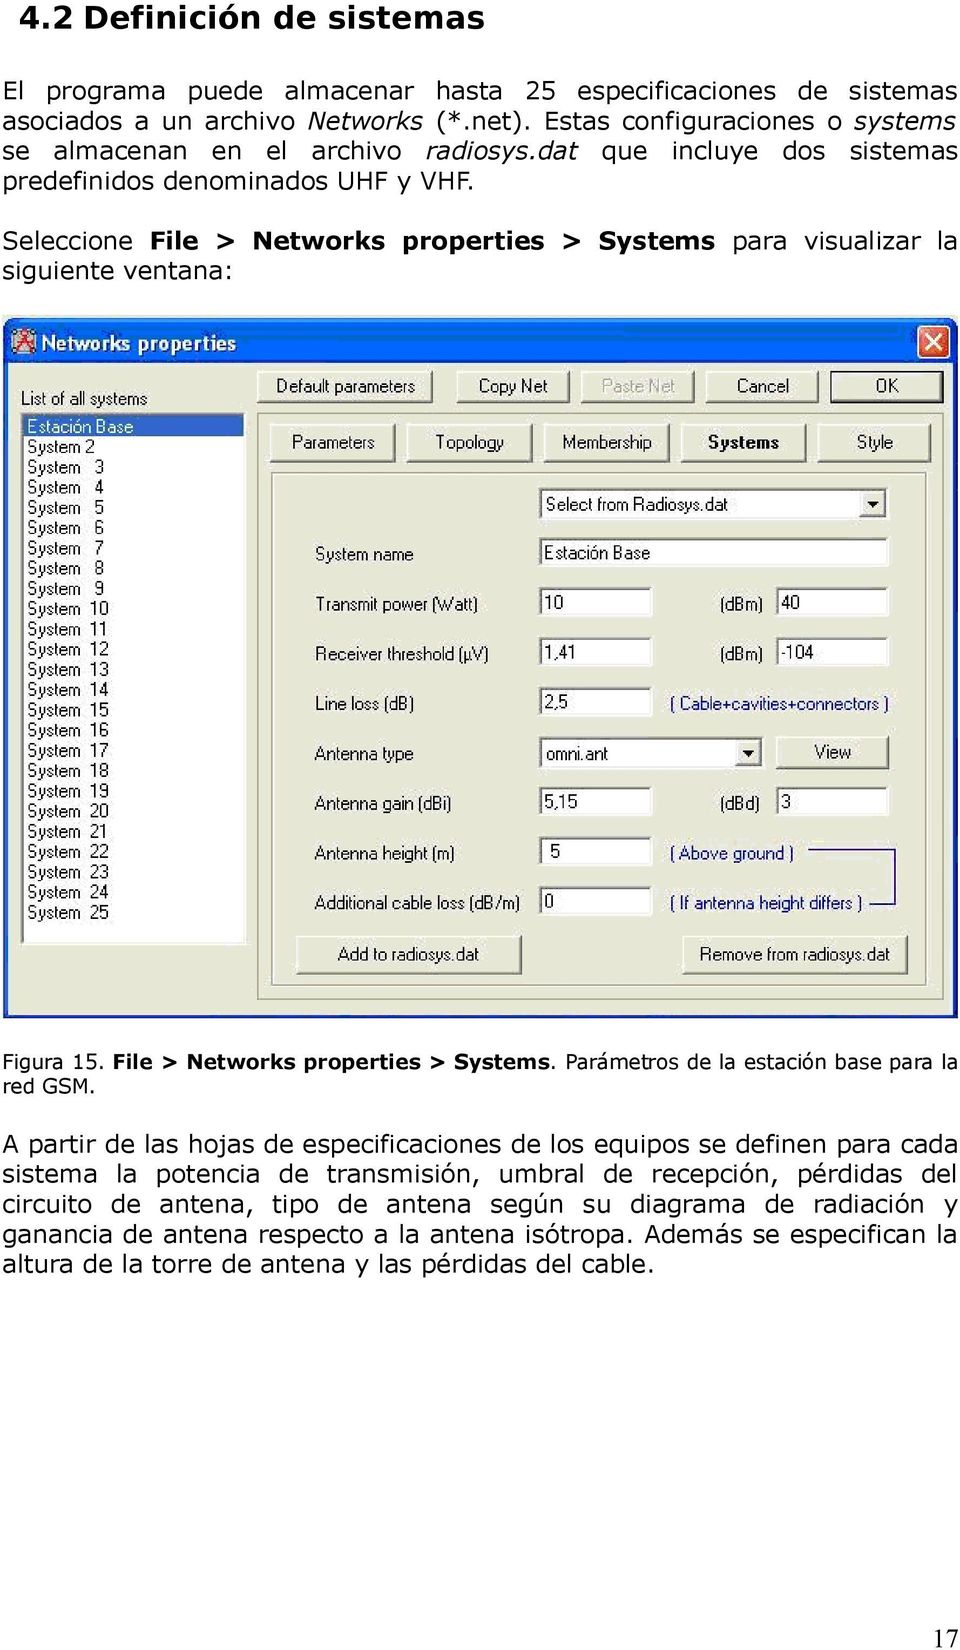 Seleccione File > Networks properties > Systems para visualizar la siguiente ventana: Figura 15. File > Networks properties > Systems. Parámetros de la estación base para la red GSM.